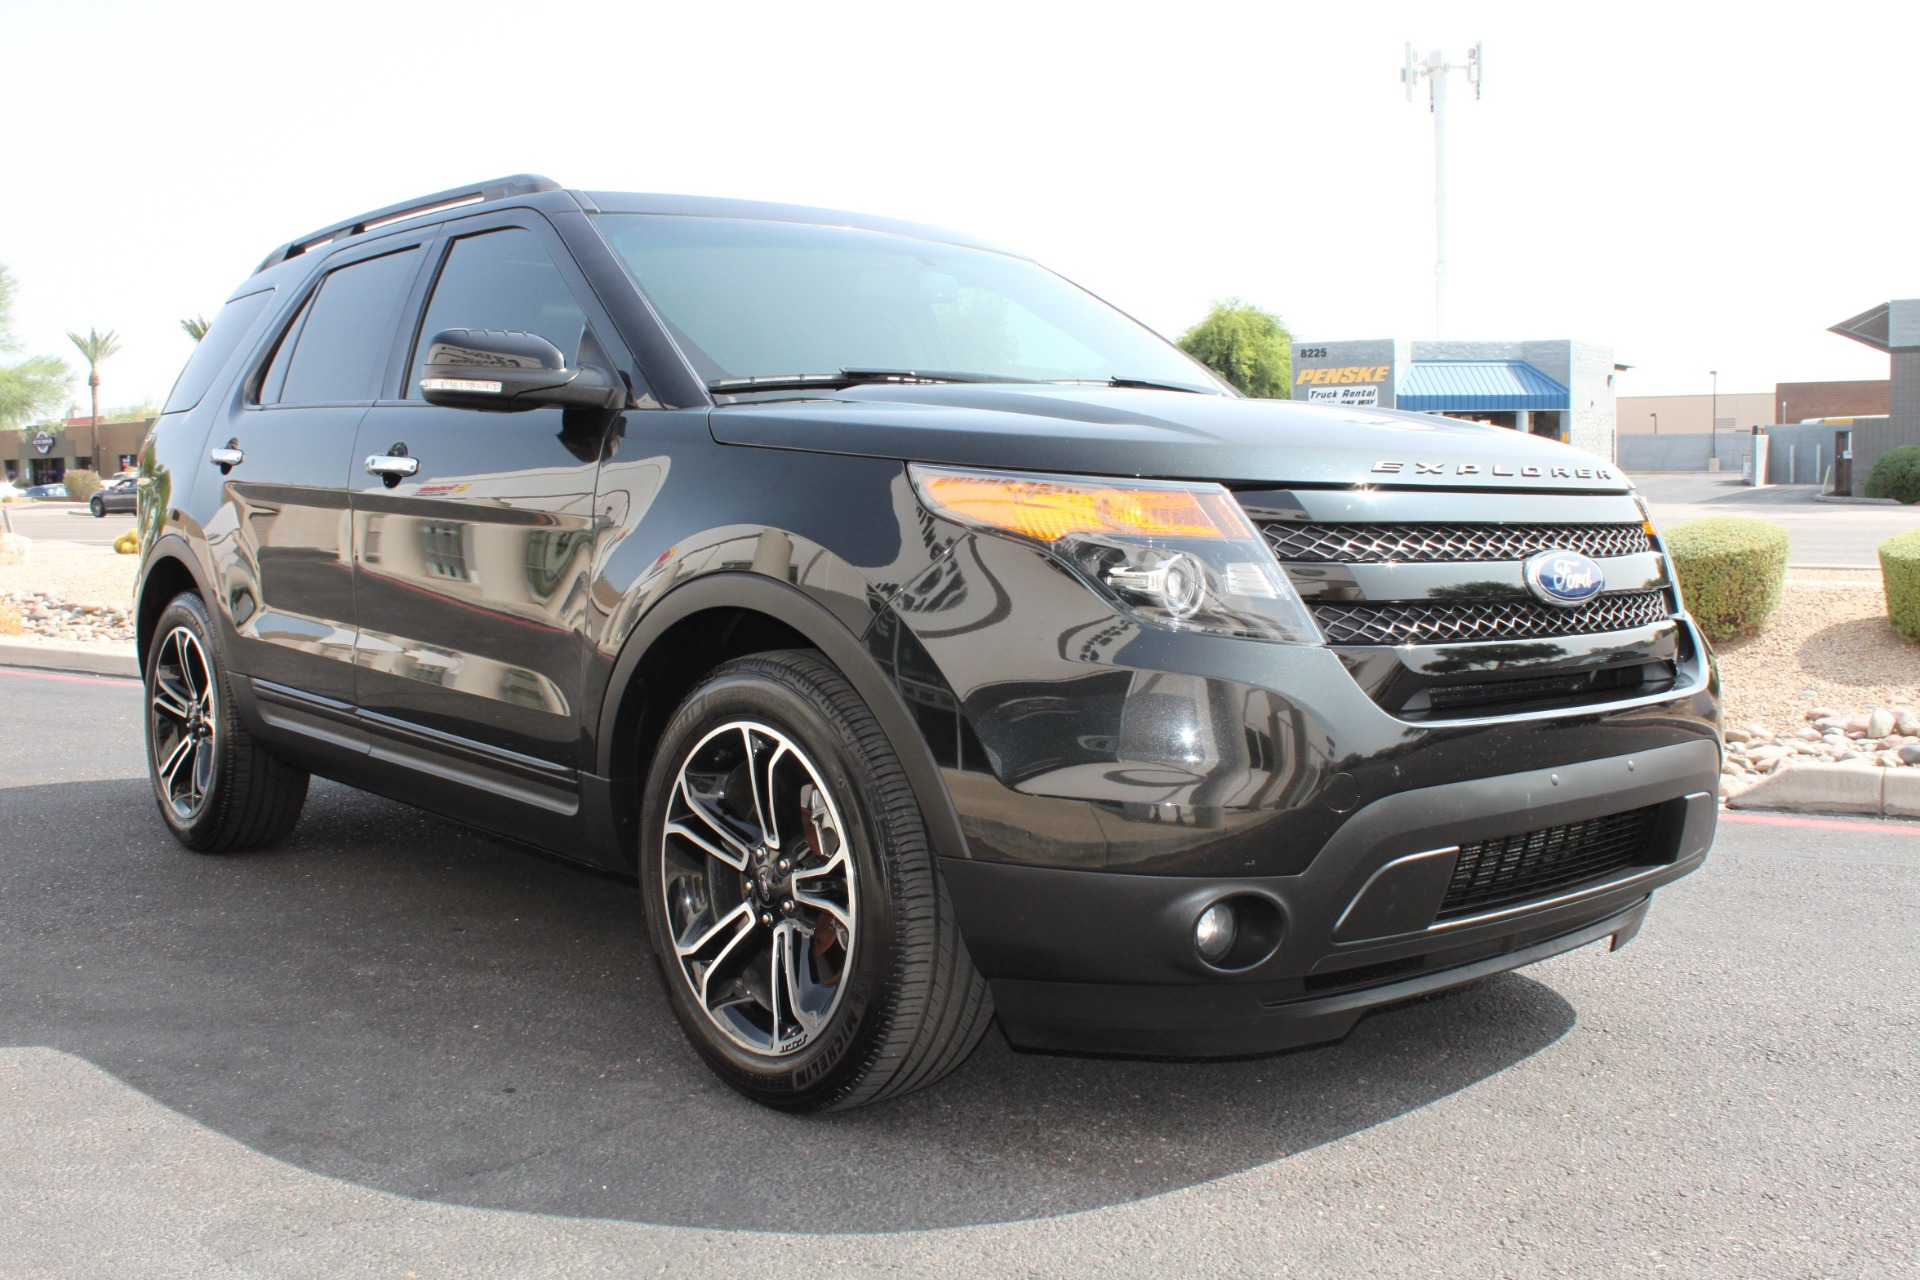 Used-2014-Ford-Explorer-Sport-4WD-Mercedes-Benz